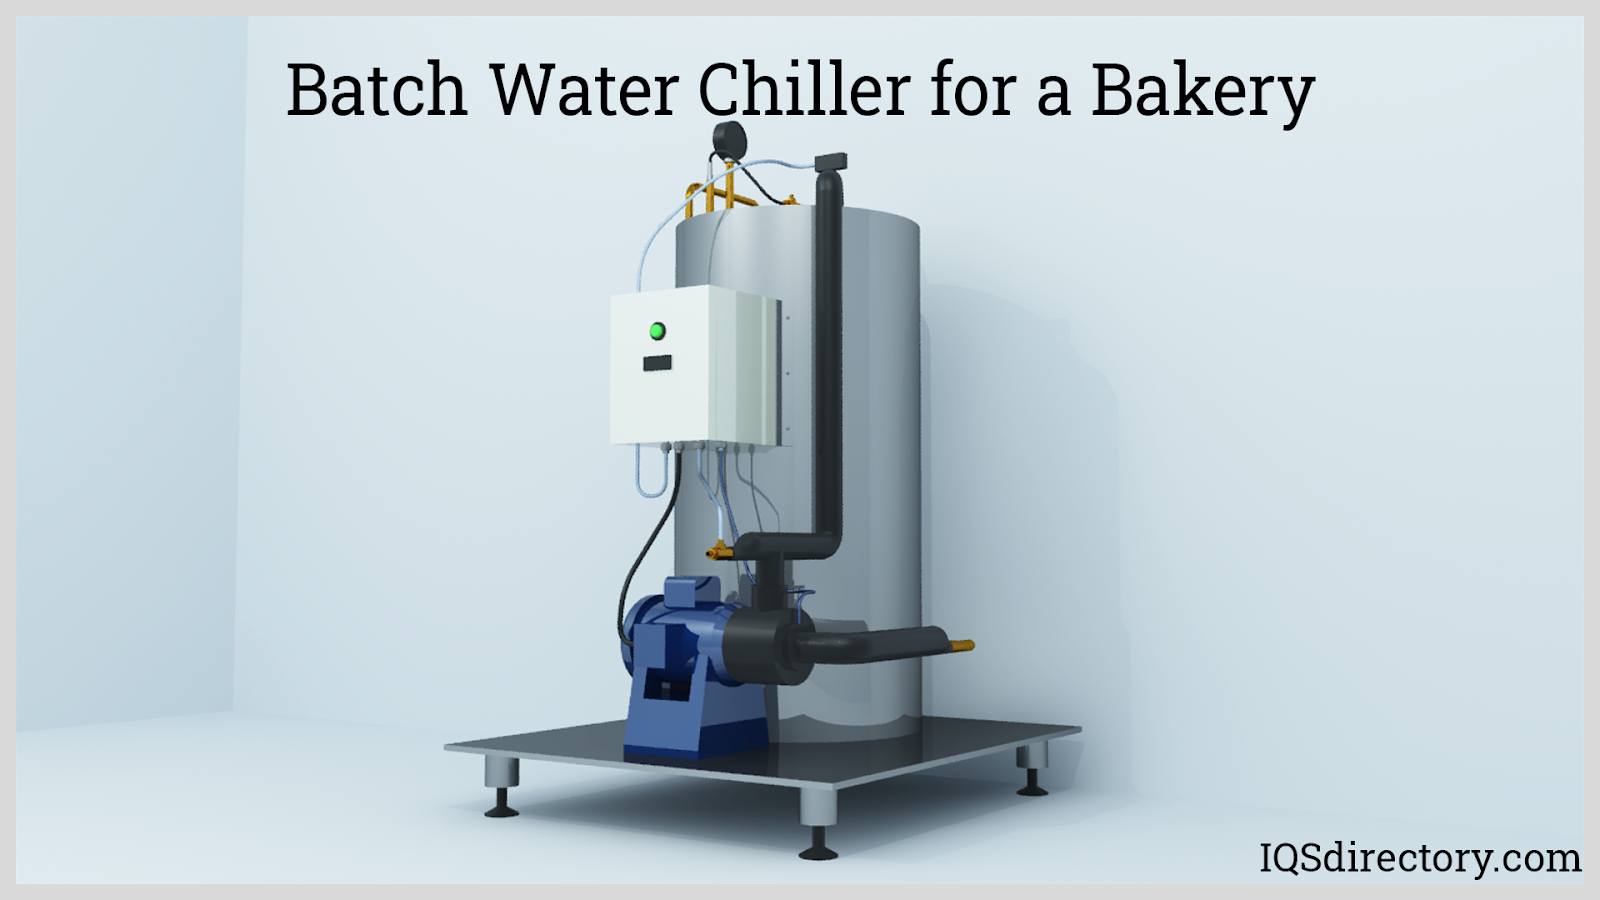 Batch Water Chiller for a Bakery